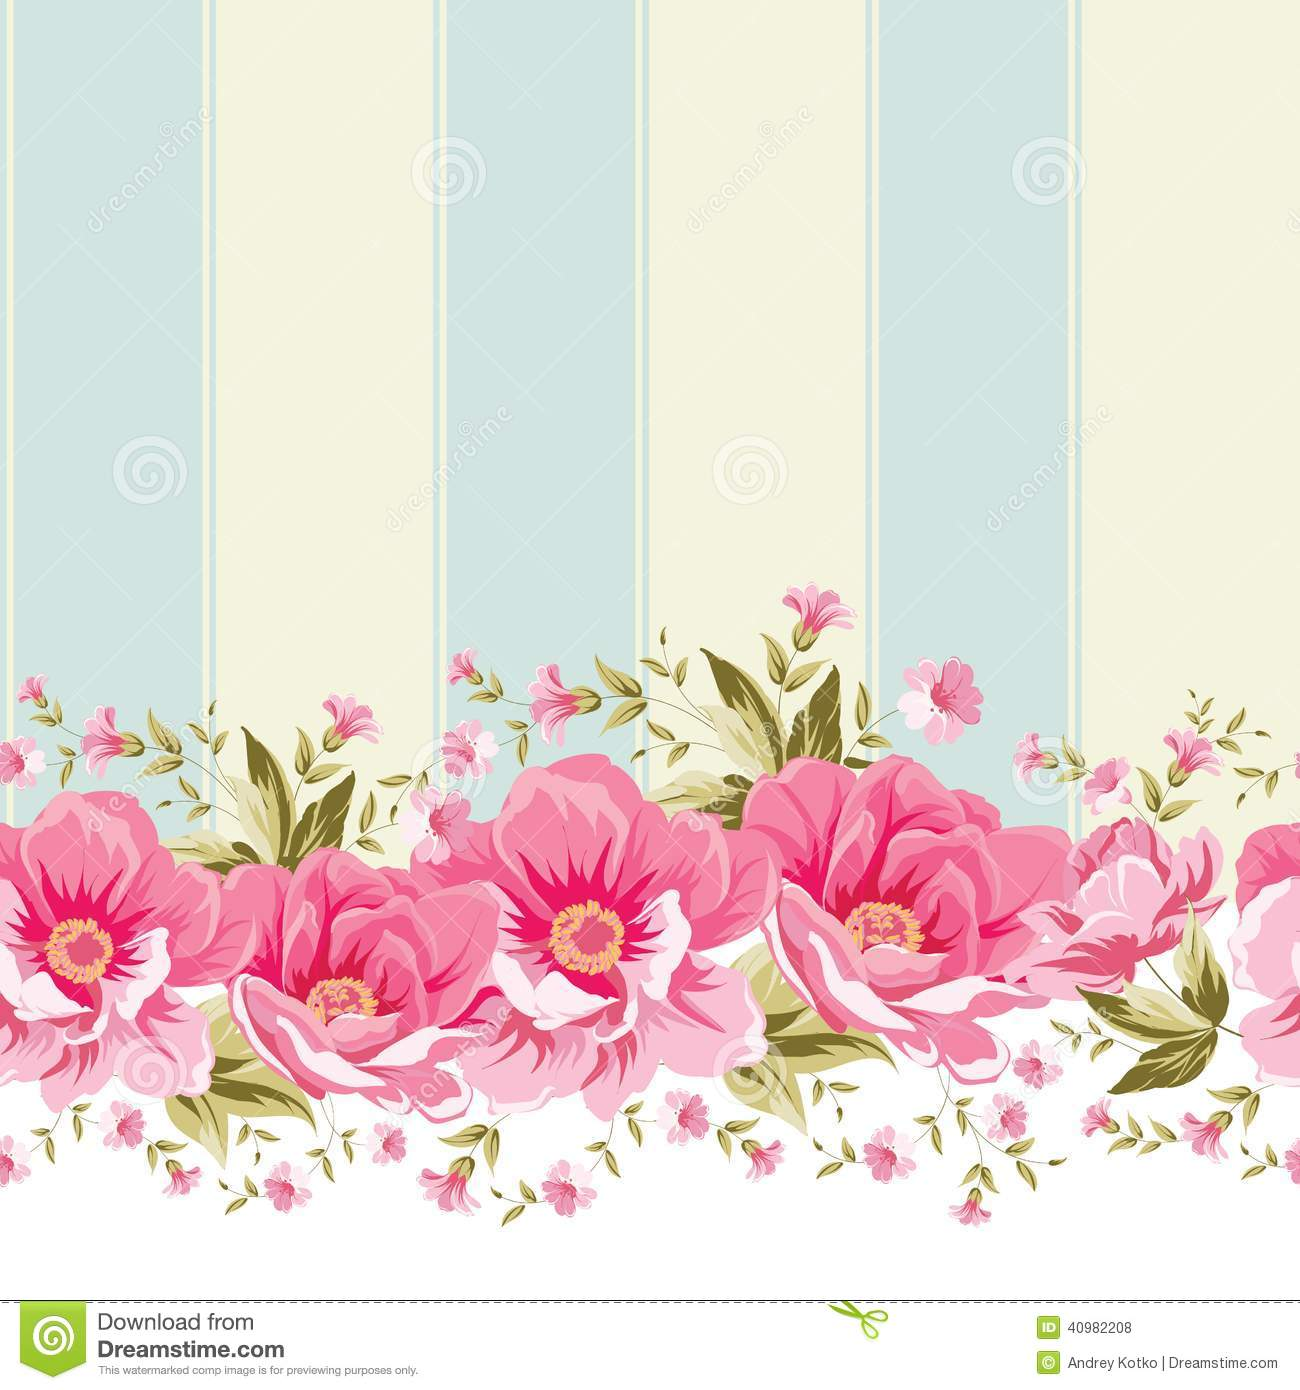 43 Are Wallpaper Borders In Style On Wallpapersafari